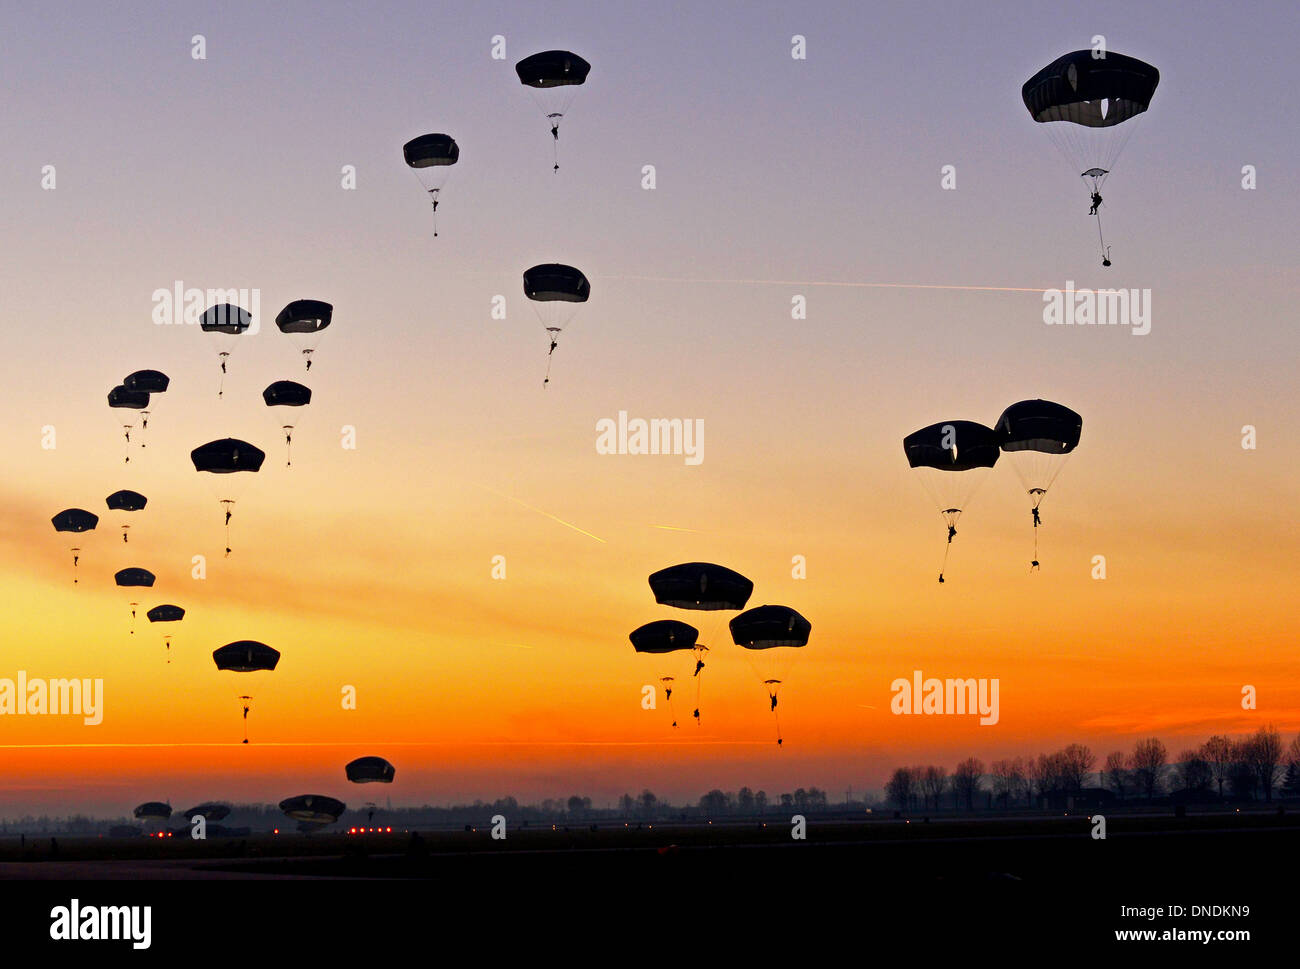 US Paratroopers drift down during a sunset parachute jump December 11, 2013 in Rivolta Air Force base, Italy. Airmen from Ramstein Air Base, Germany, and the 31st Fighter Wing at Aviano Air Base, Italy, partnered with soldiers from US Army at Vicenza to conduct airfield seizure training operations during a two-week close air support training exercise. - Stock Image